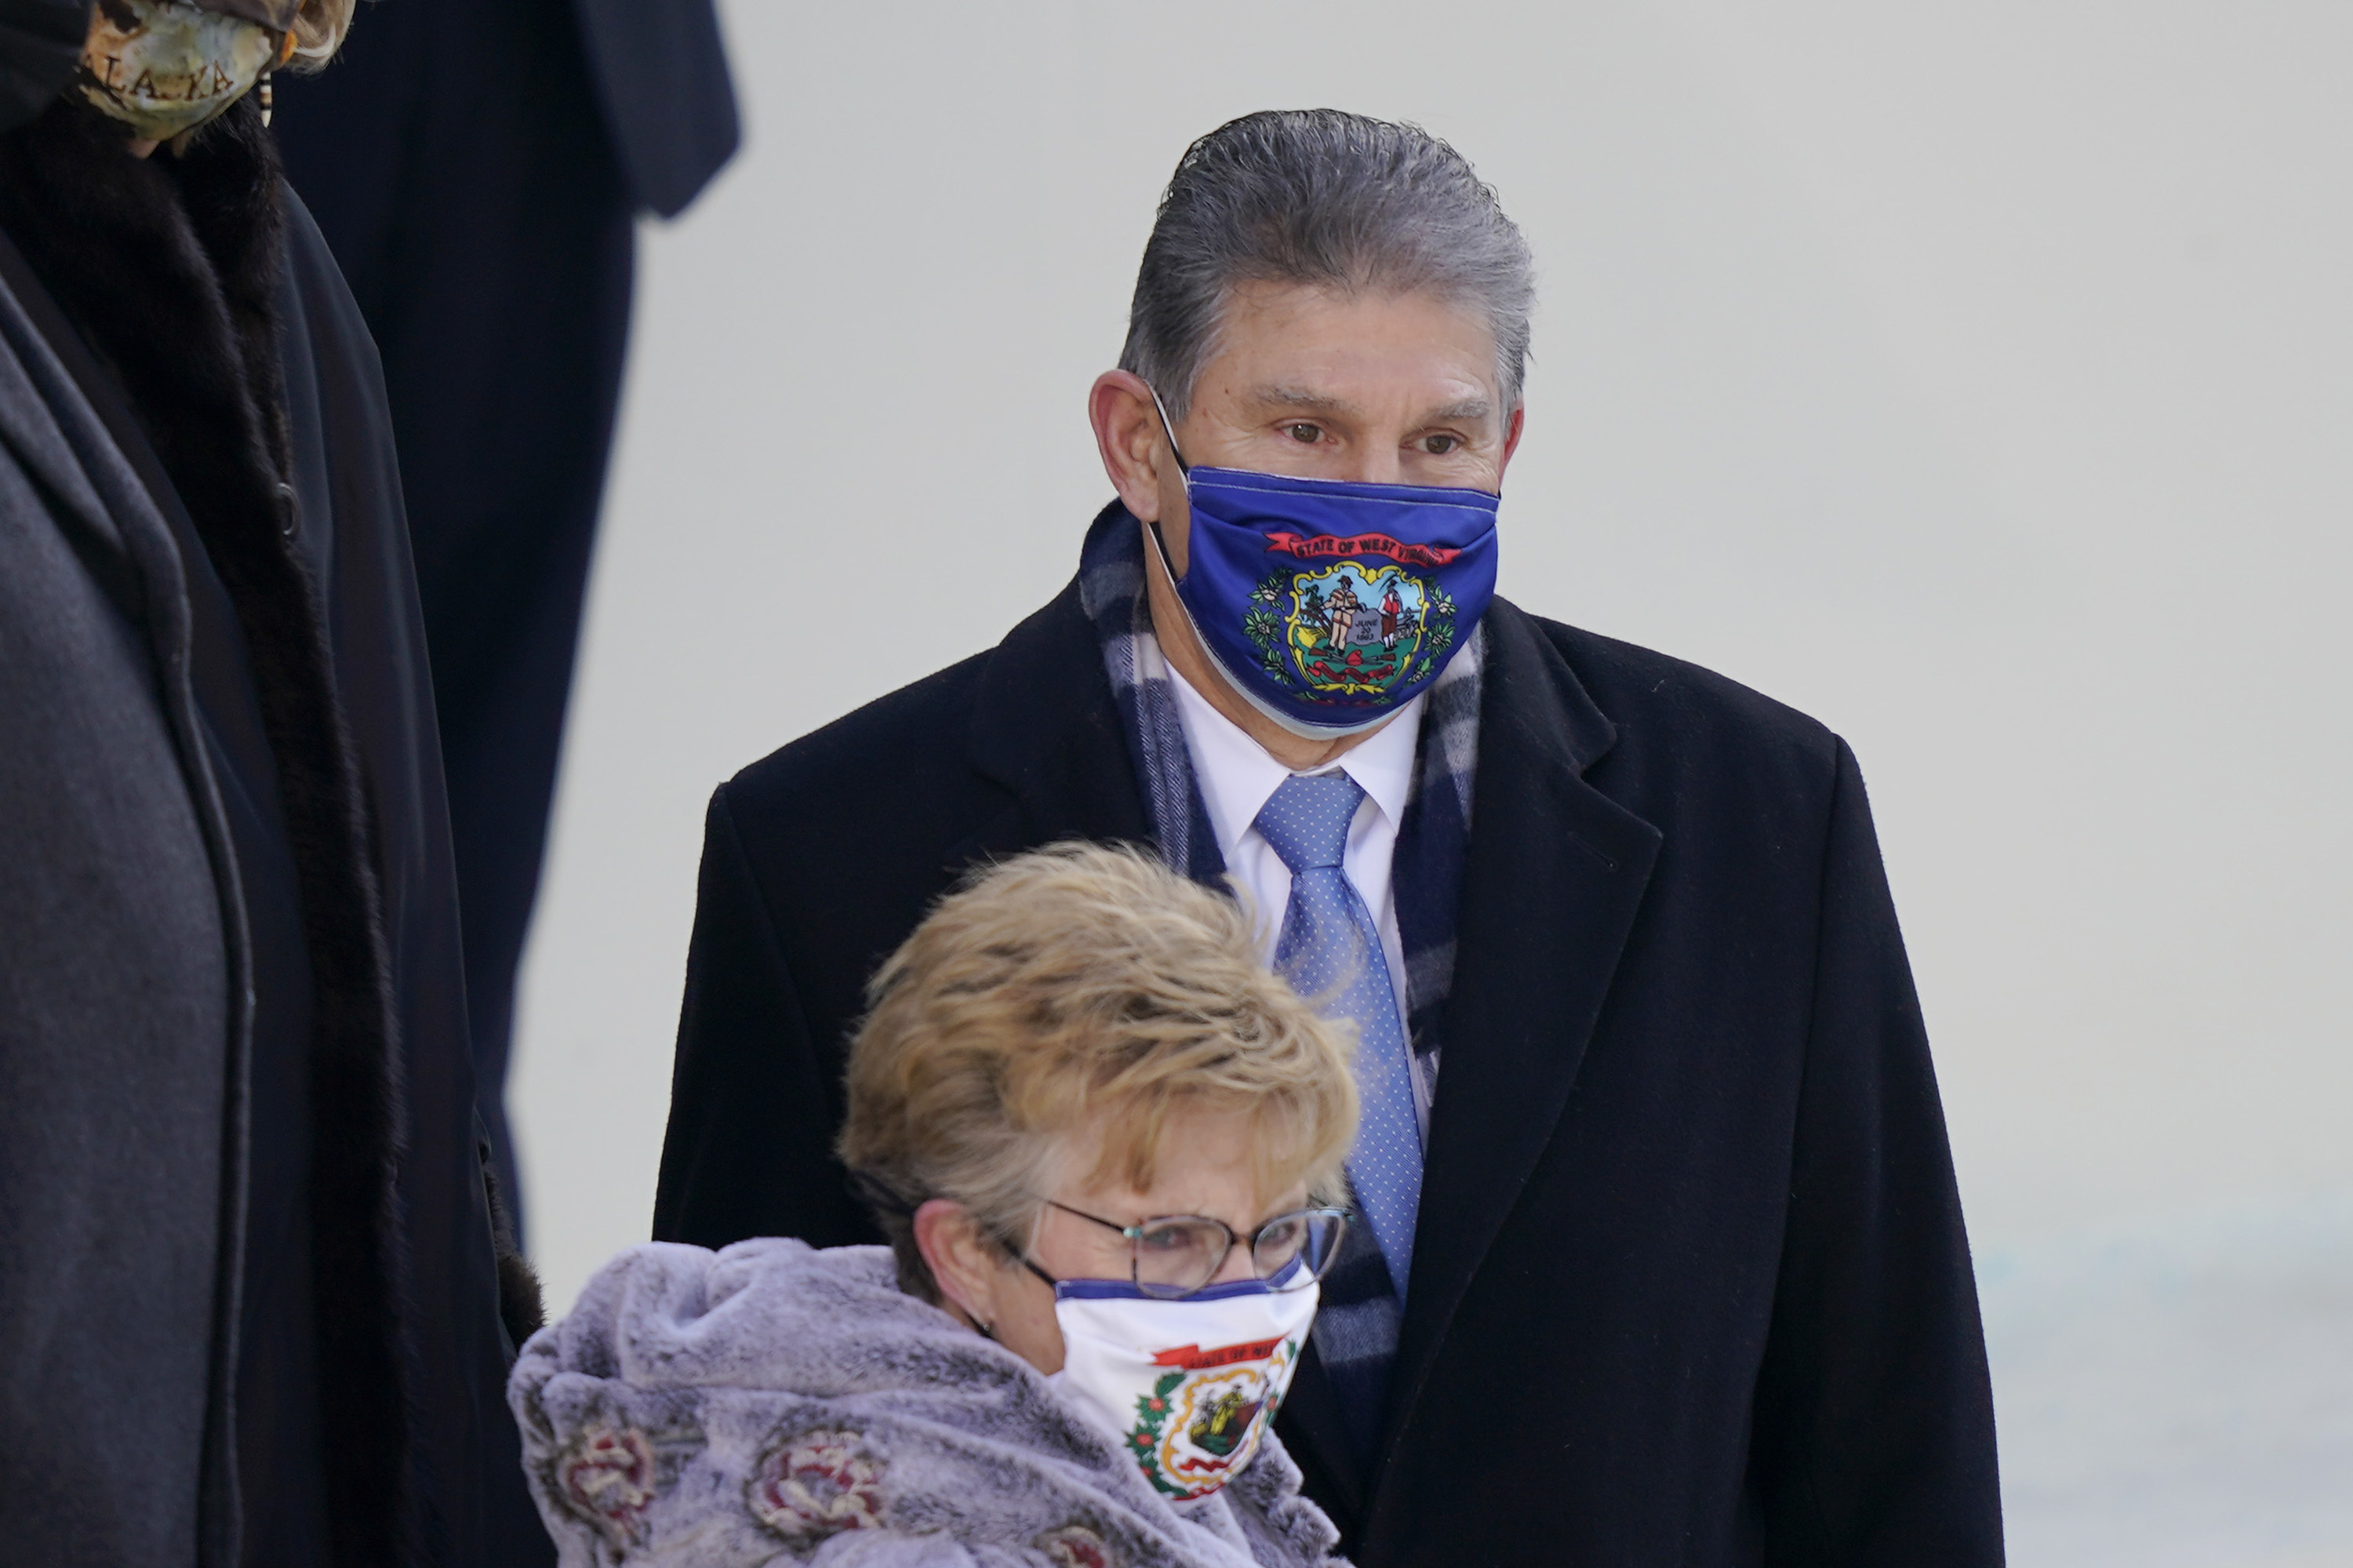 Sen. Joe Manchin and a woman wearing face masks with the state of West Virginia flag at the inauguration.